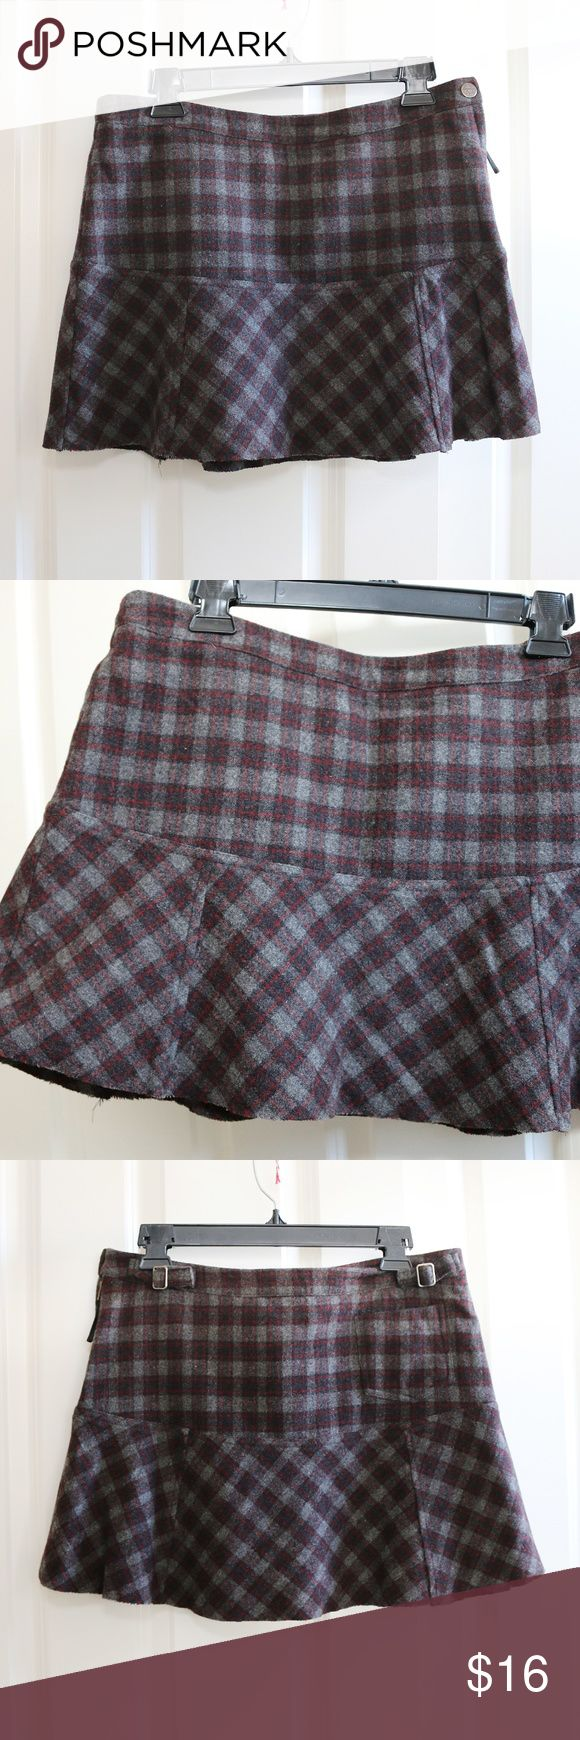 American Eagle Plaid Mini Skirt Size 8 American Eagle Outfitters plaid mini skirt.  Gray and red pattern.  Wool blend, lined.  Zipper and button on the side.  Size 8.  Waist is about 16 inches from side to side.  Length is about 14 inches.  NWT.  There is a tiny start of a hole on the back, see picture. American Eagle Outfitters Skirts Mini